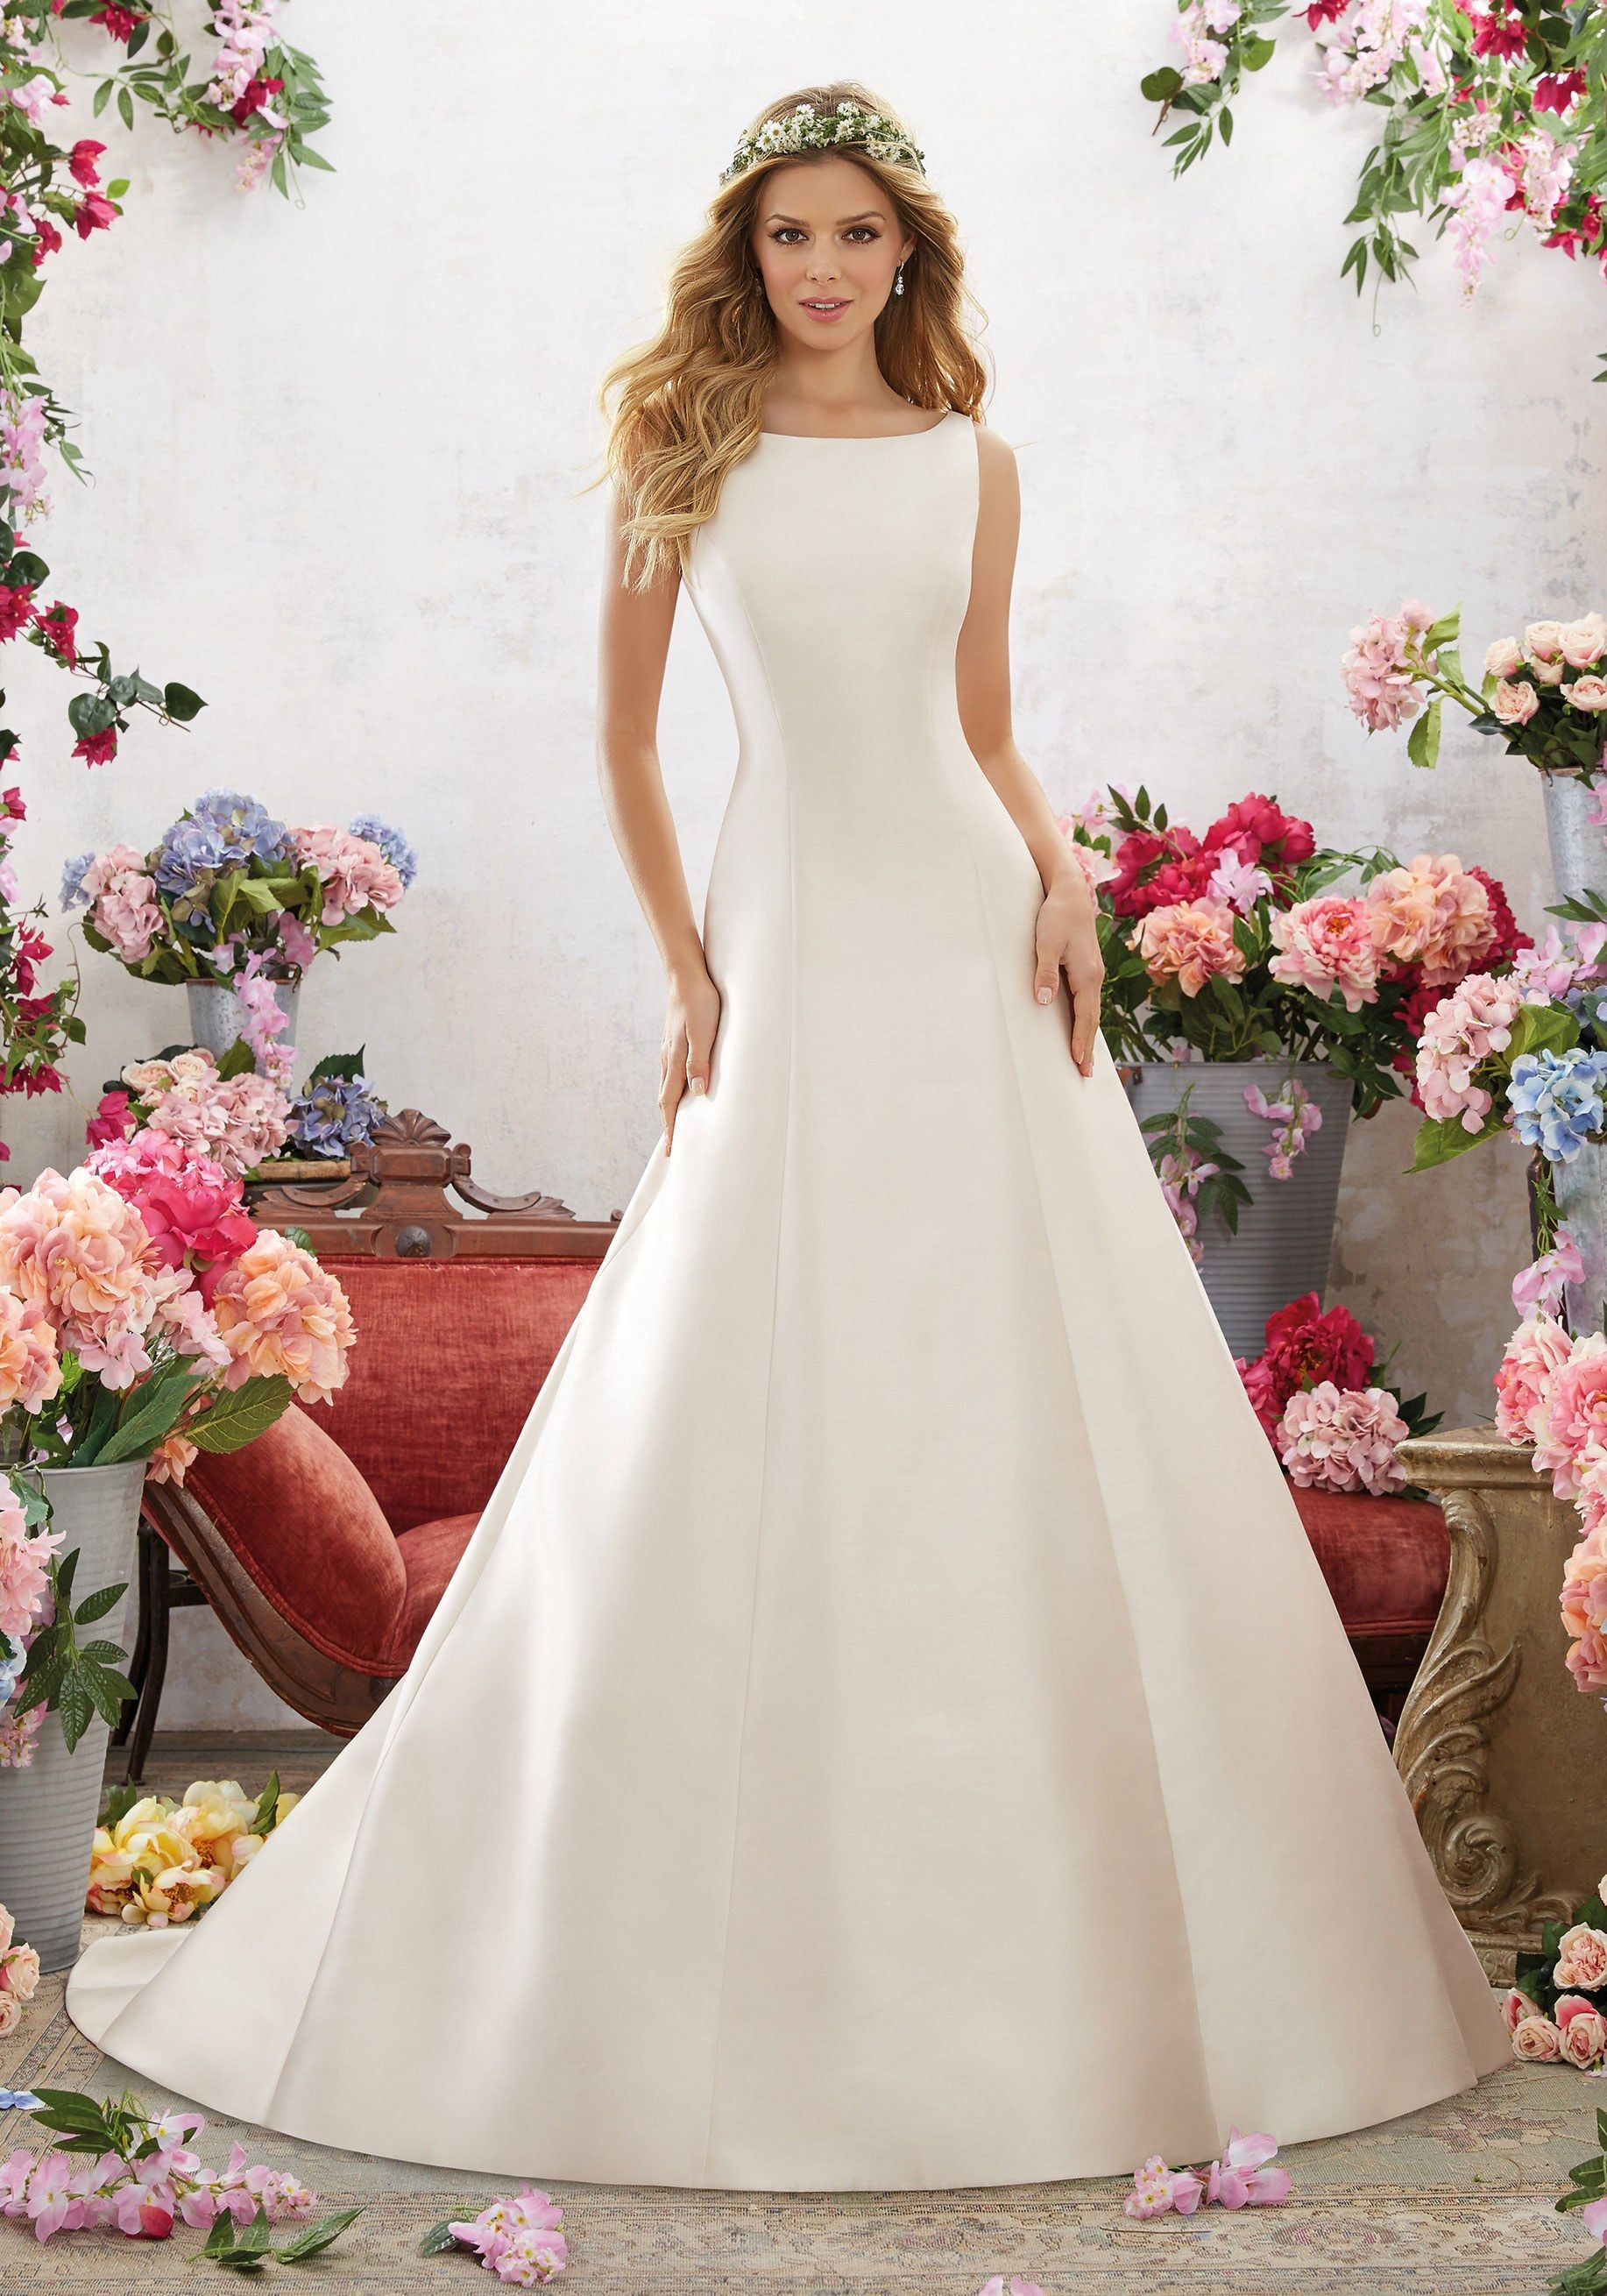 Wedding Dresses Under 1 000 Affordable Inexpensive Gowns Brides